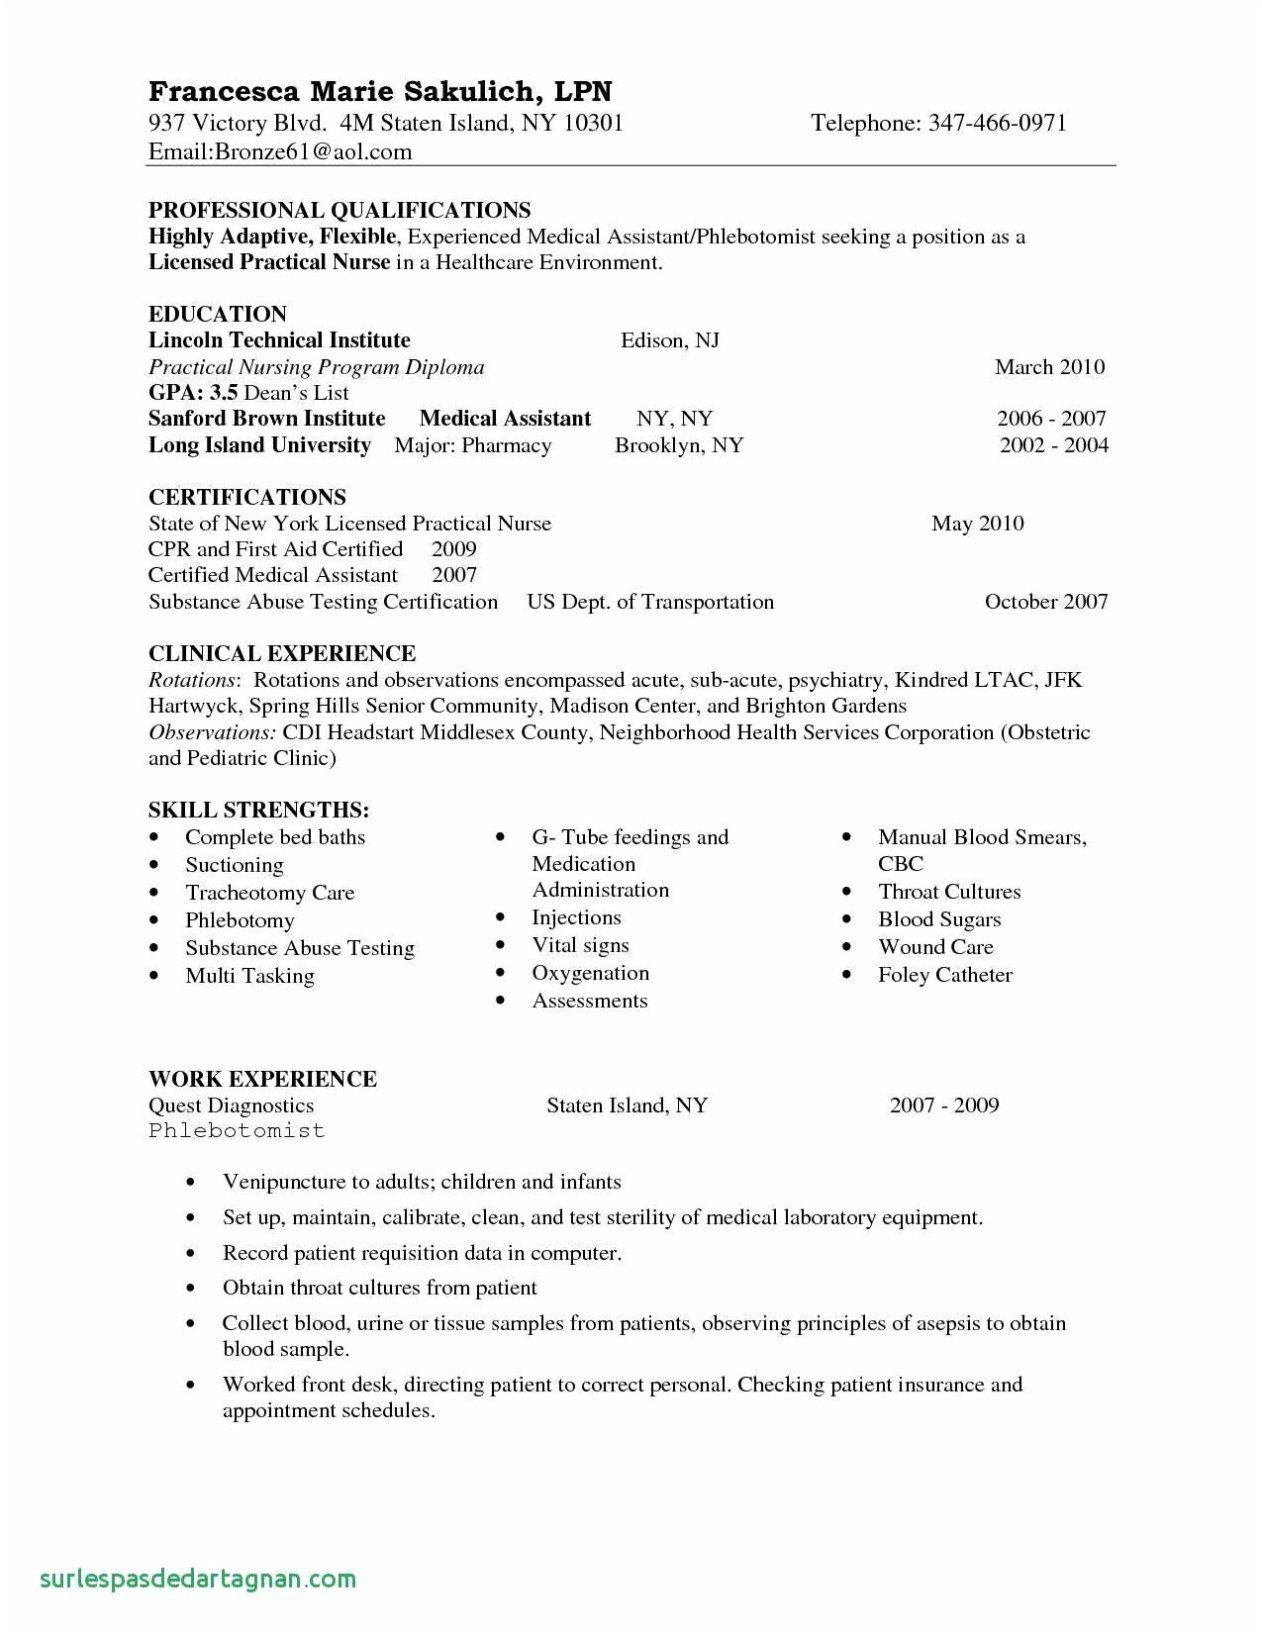 new grad registered nurse resume sample elegant 14 graduate nurse resume template free samples